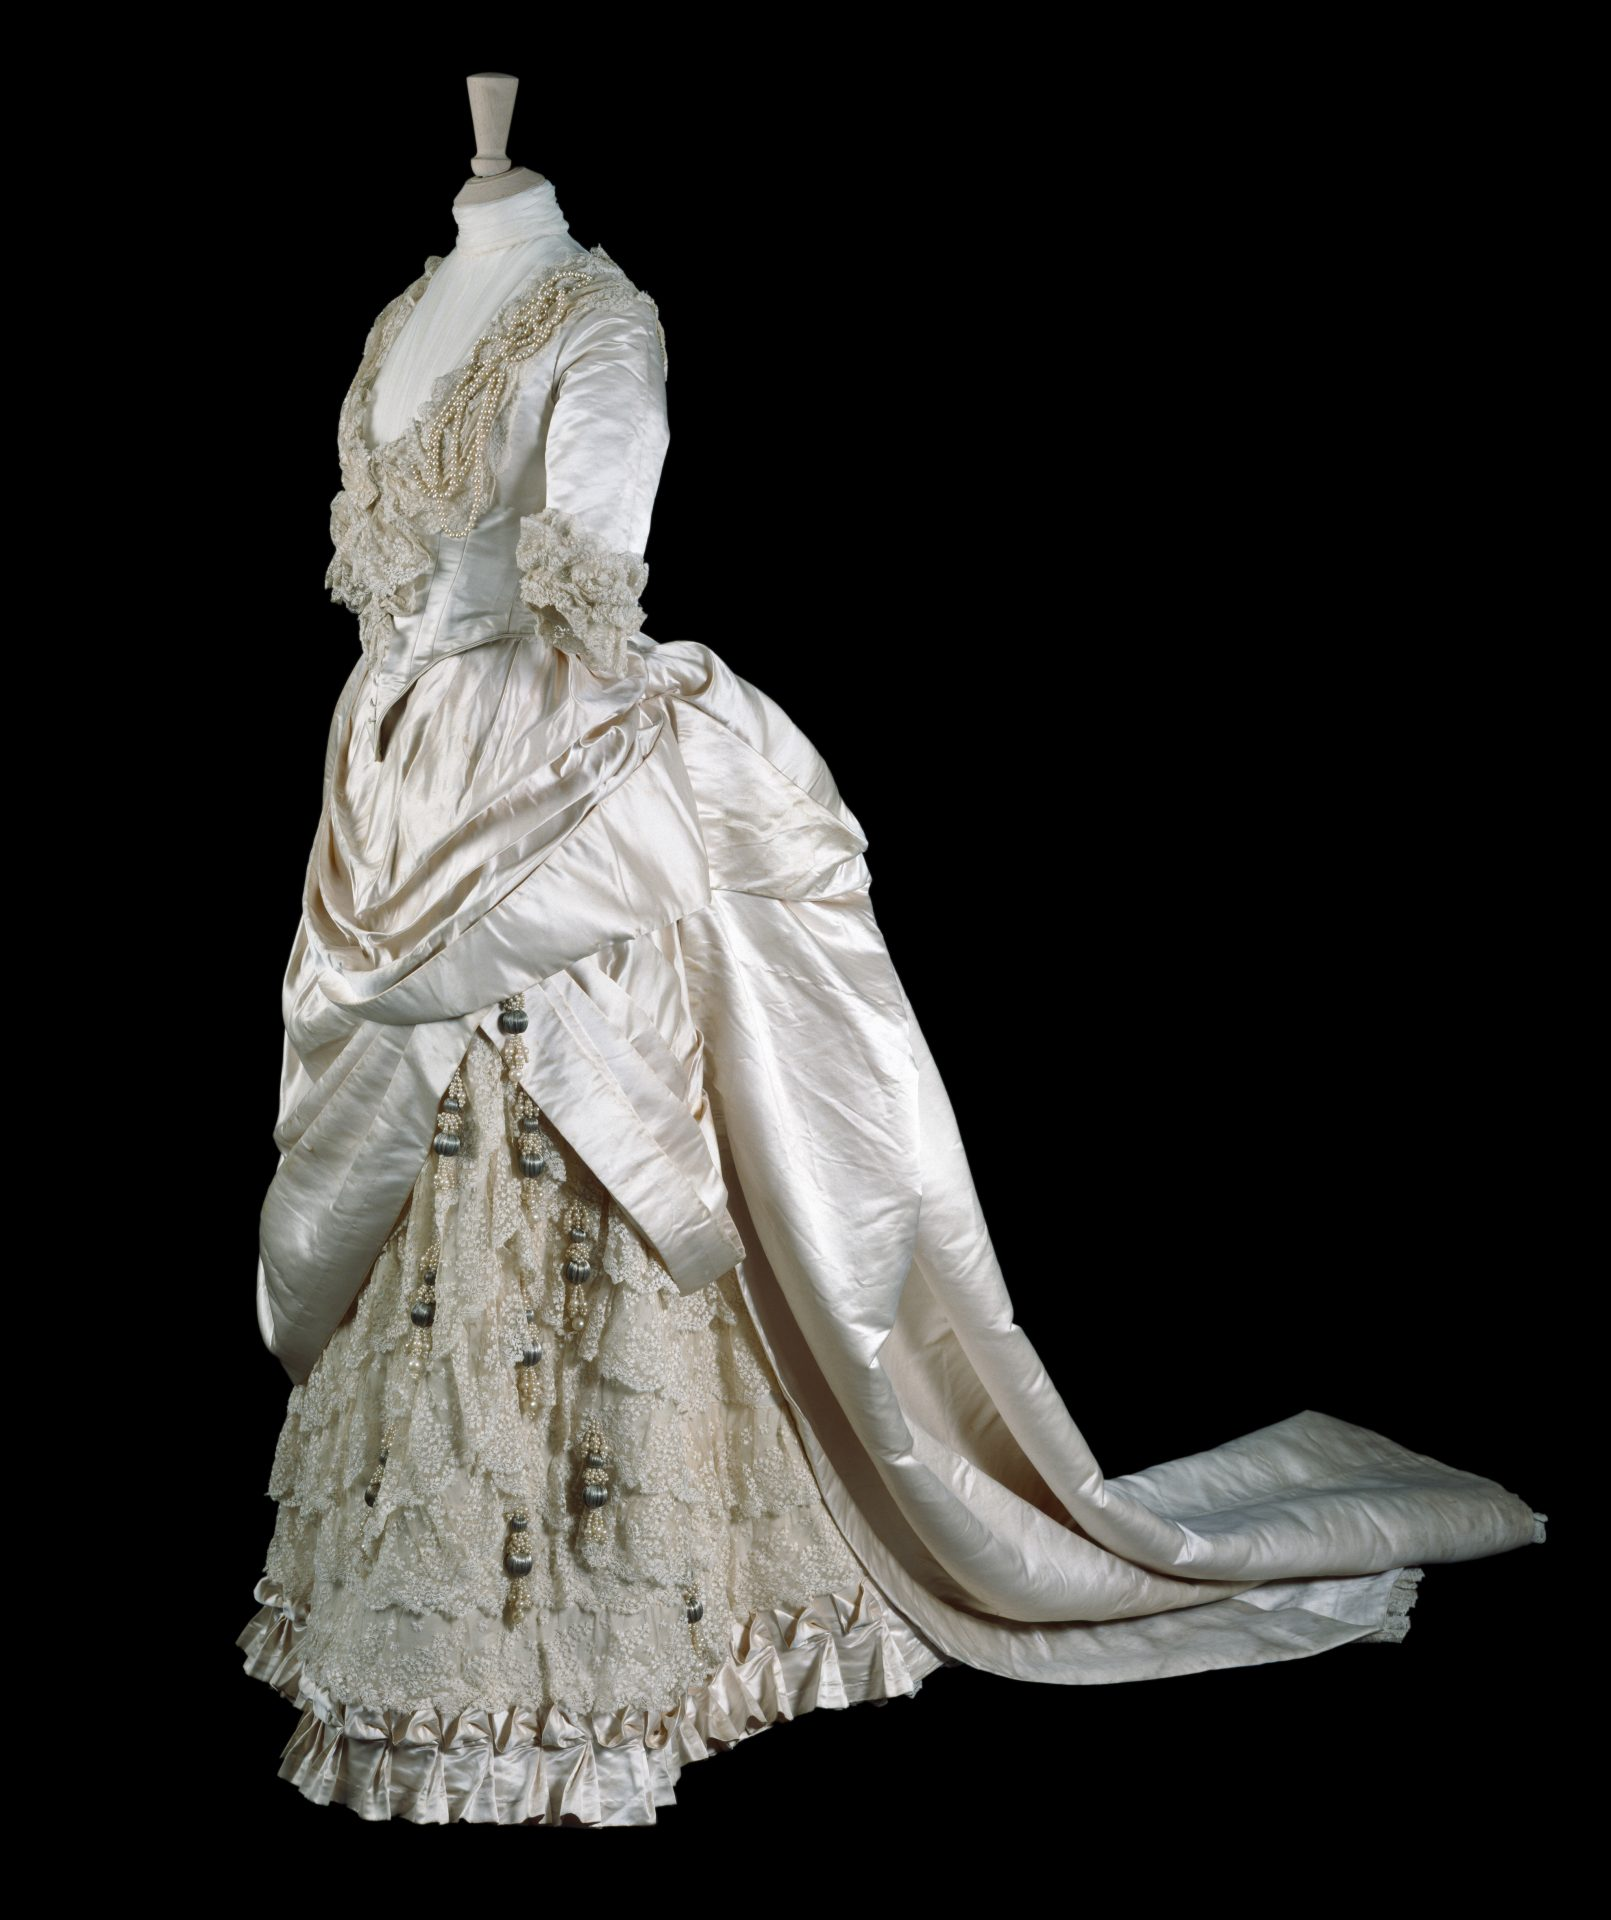 Wedding dress made by Gladman & Womack, London, 1885. Cream silk satin trimmed with embroidered net and pearl beads. Worn by May Primrose to marry Major Herbert Littledale on 10 June 1885 in Cheltenham. Given by the Hon.S.F. Tyser